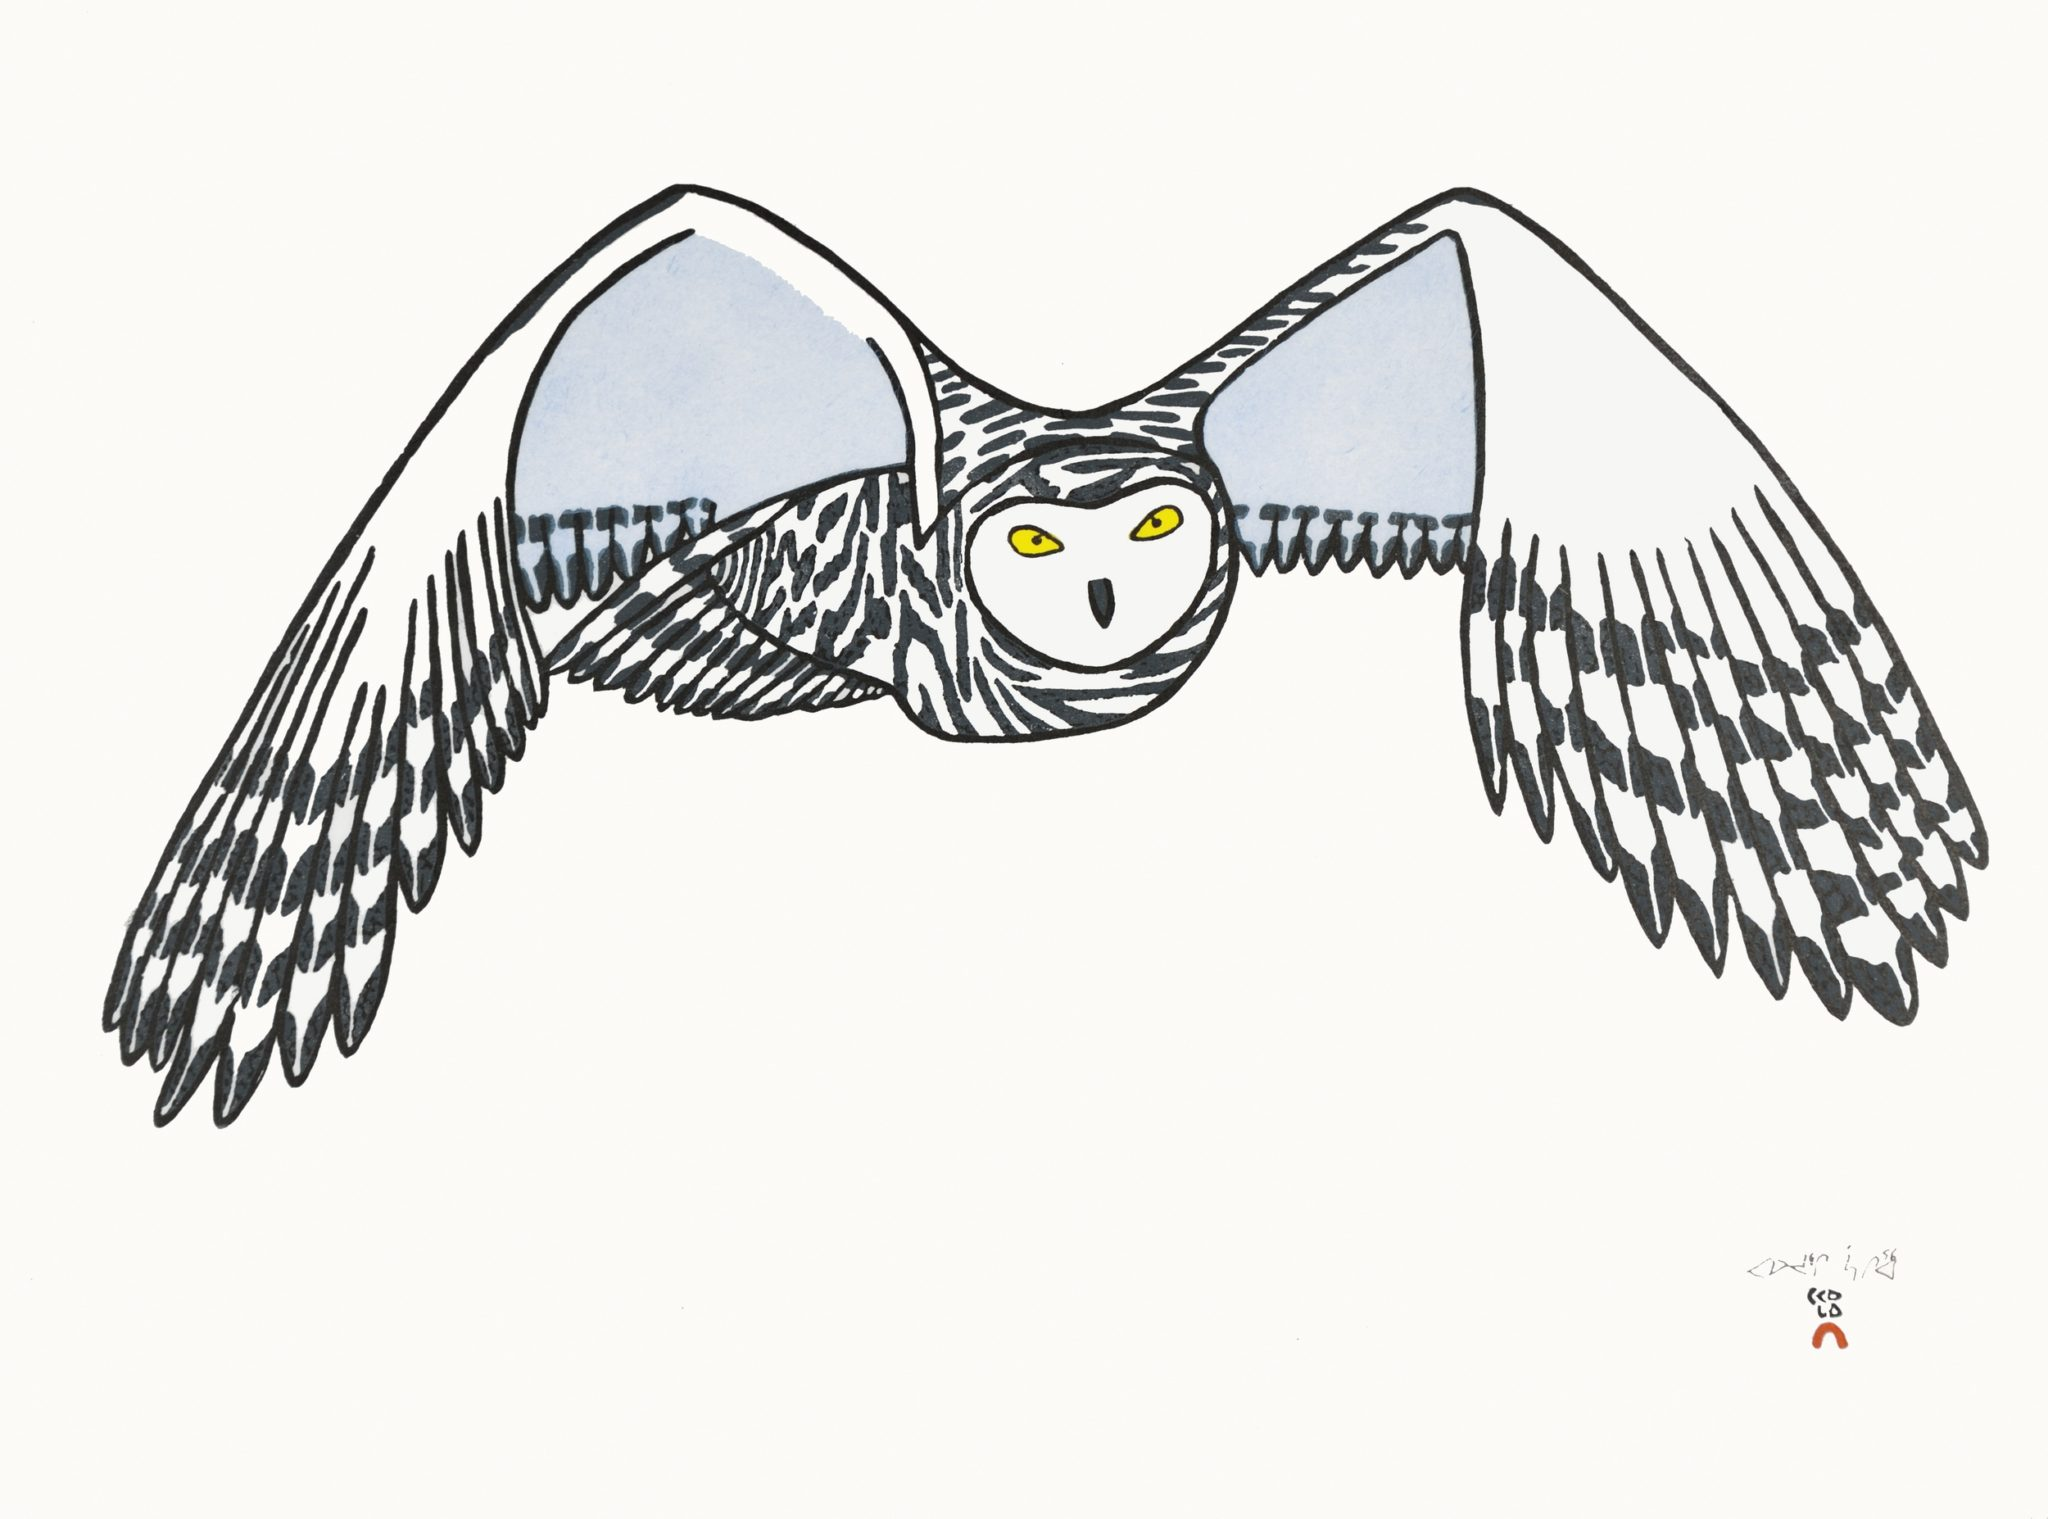 Pauojoungie Saggiai Watchful Eyes cape dorset print collection 2016 owl $440